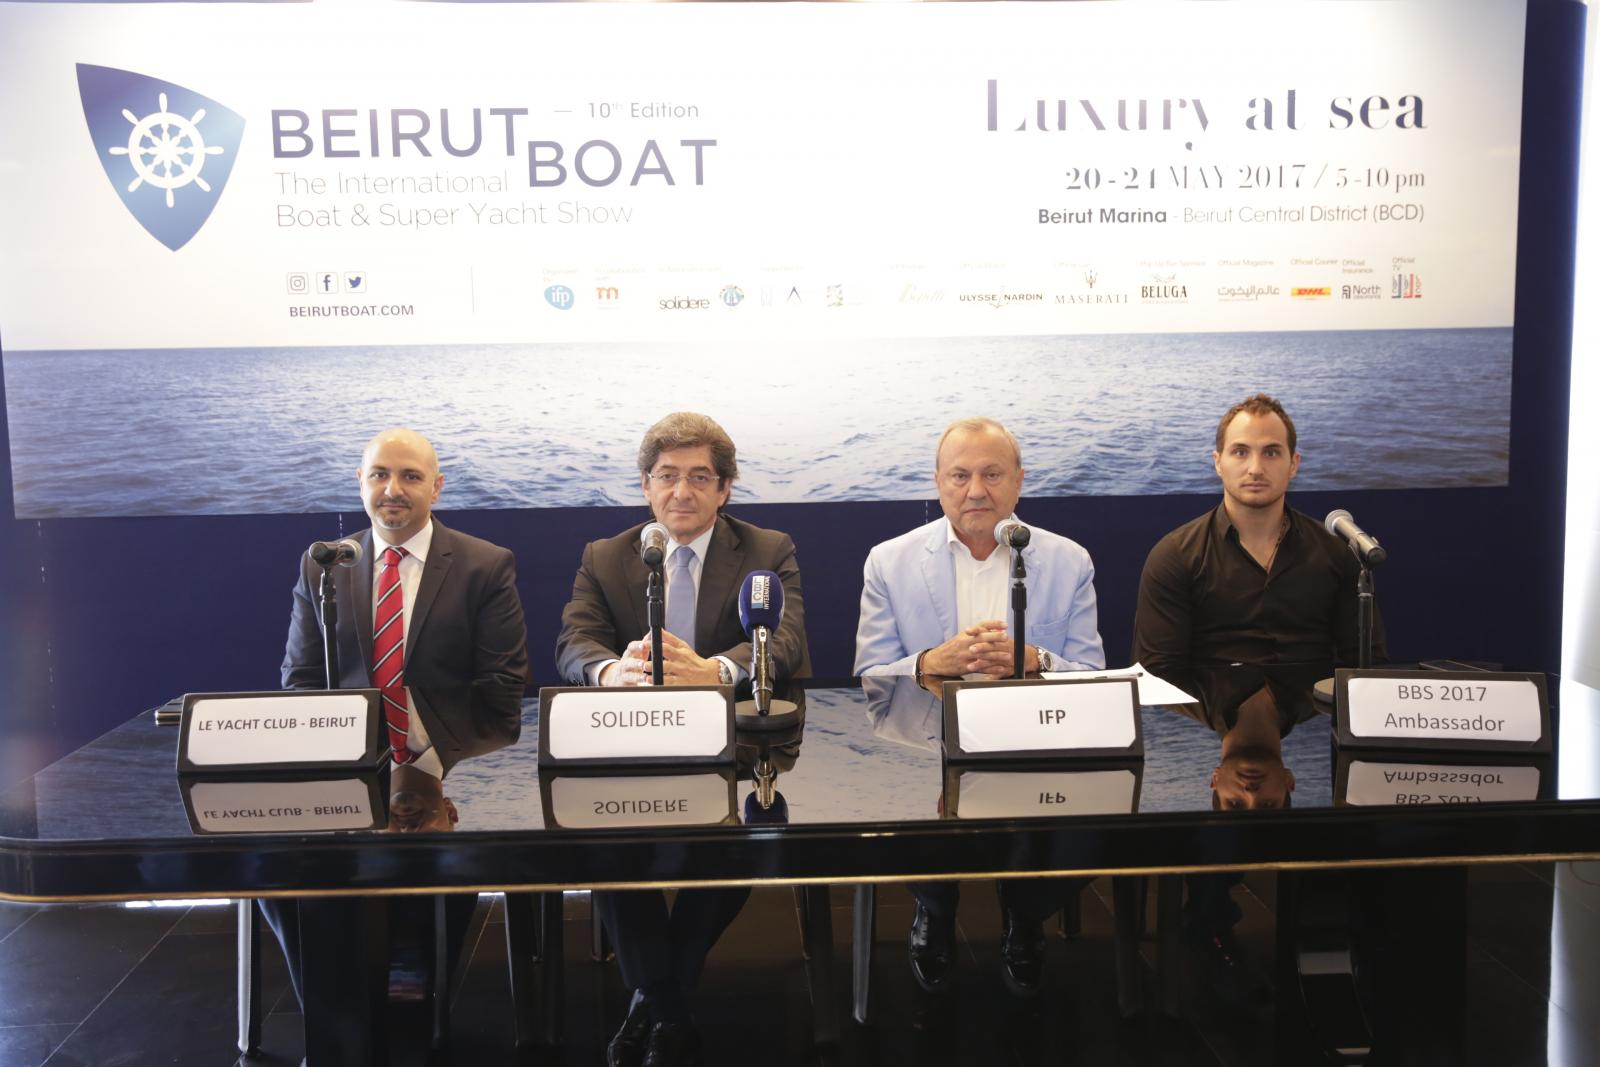 IFP Group Launches Beirut Boat 2017 Under the Patronage of His Excellency President Michel Aoun at Marina Solidere